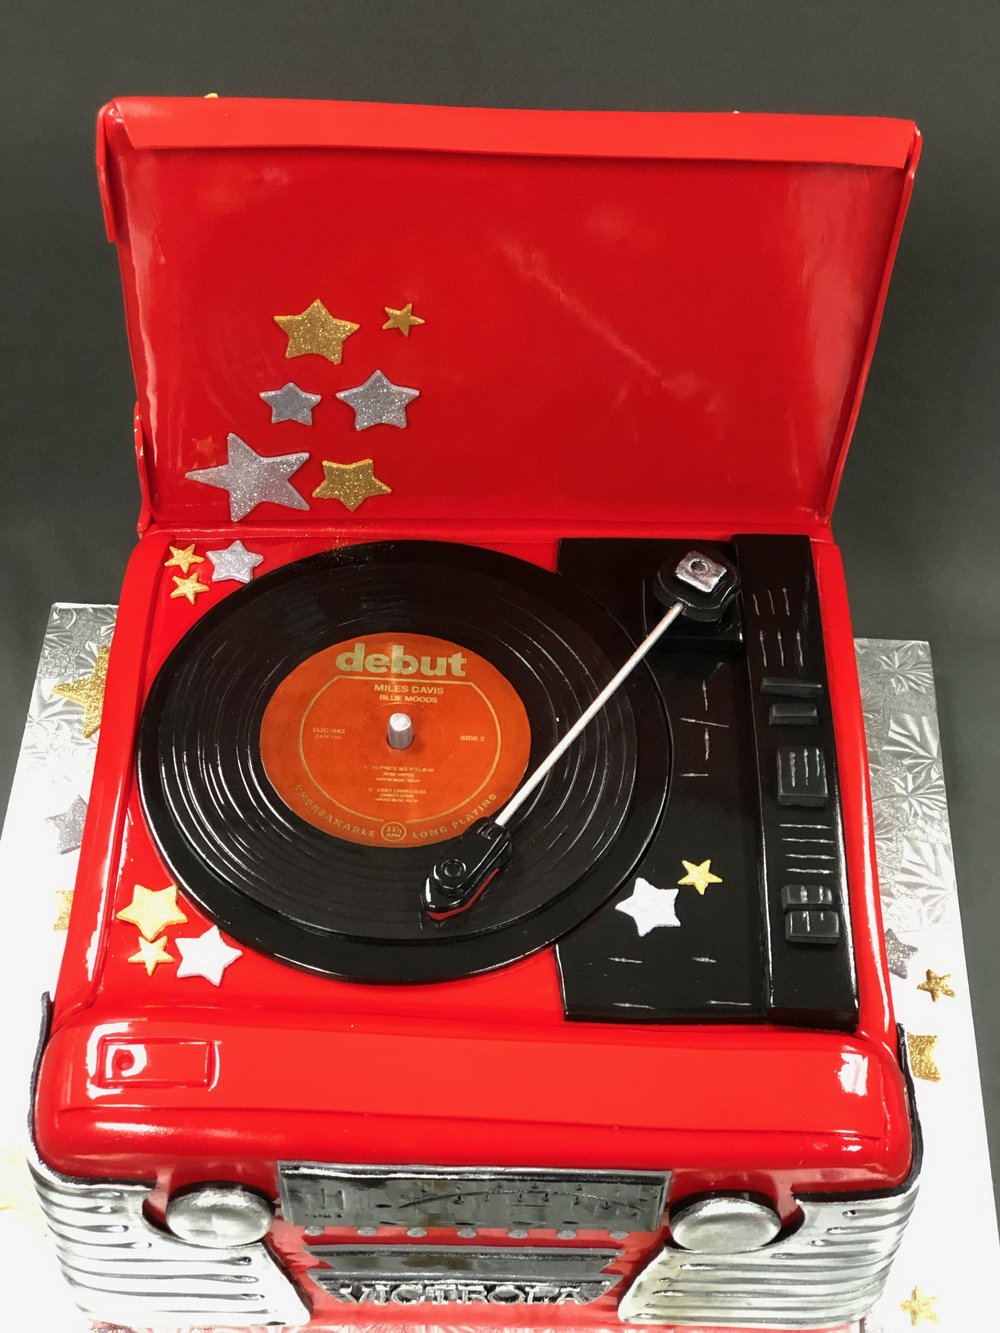 Retro Vintage Record Player Birthday Cake NJ